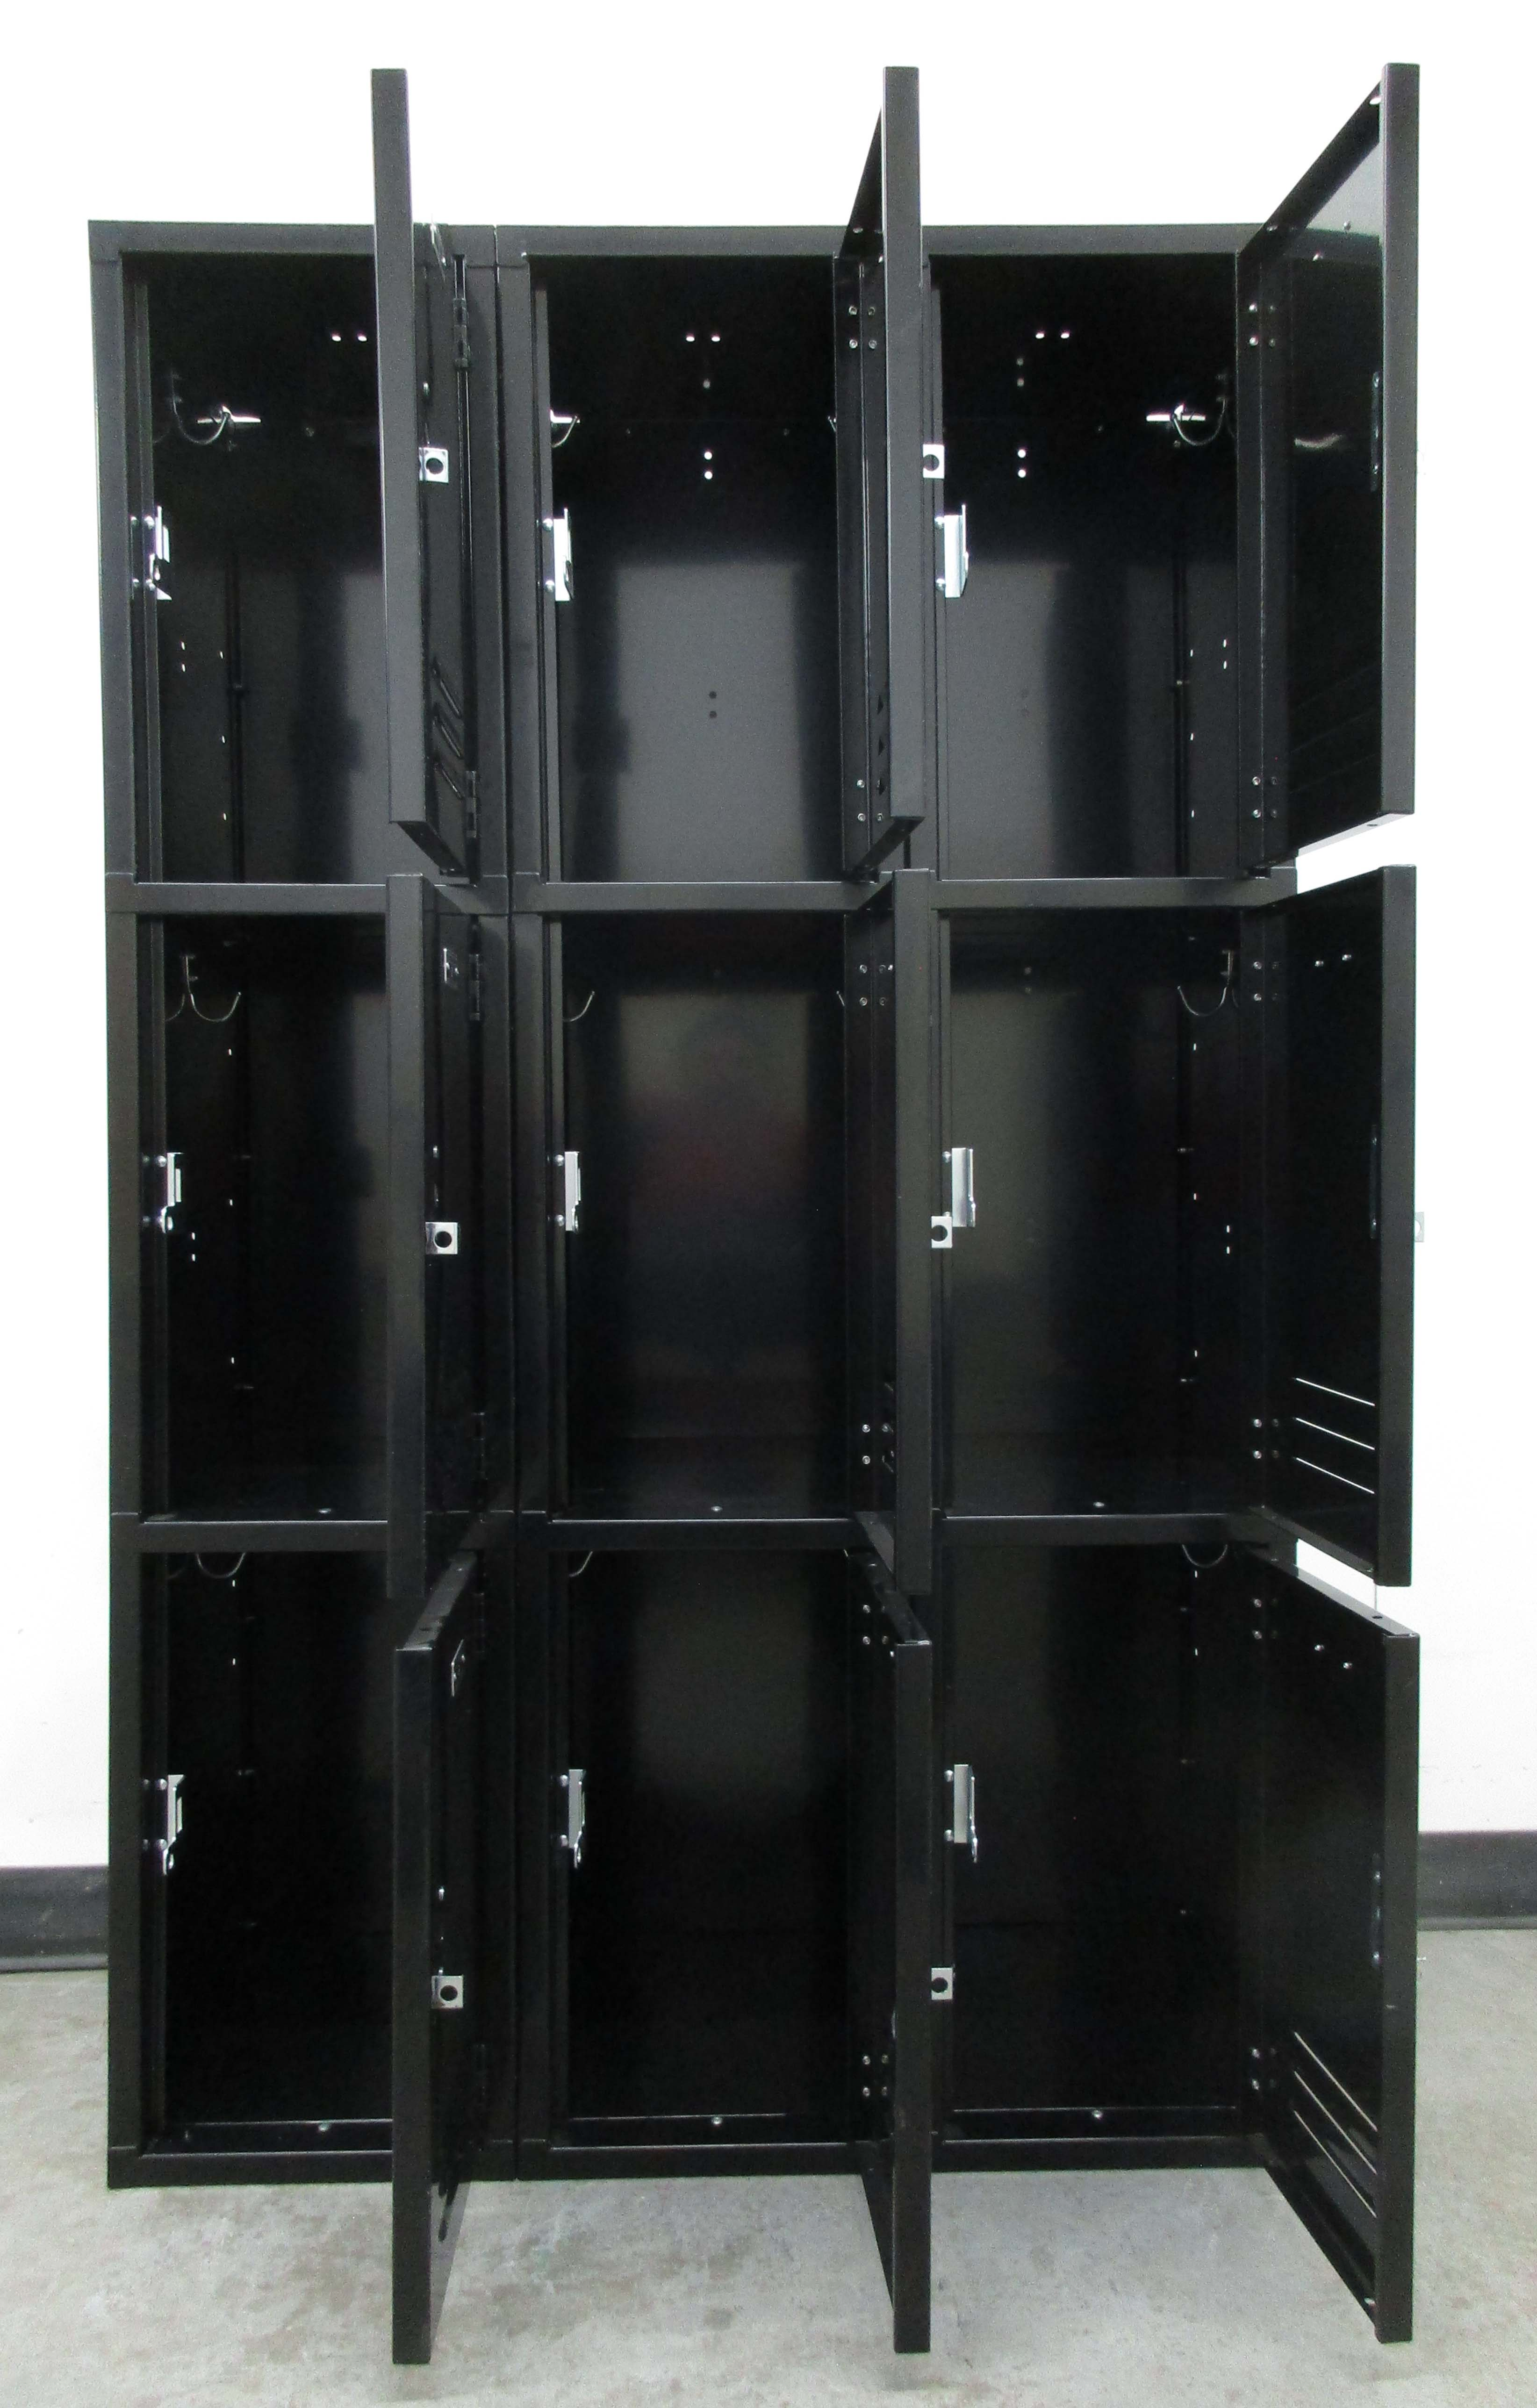 Black Triple Tier Storage Lockersimage 3 image 3